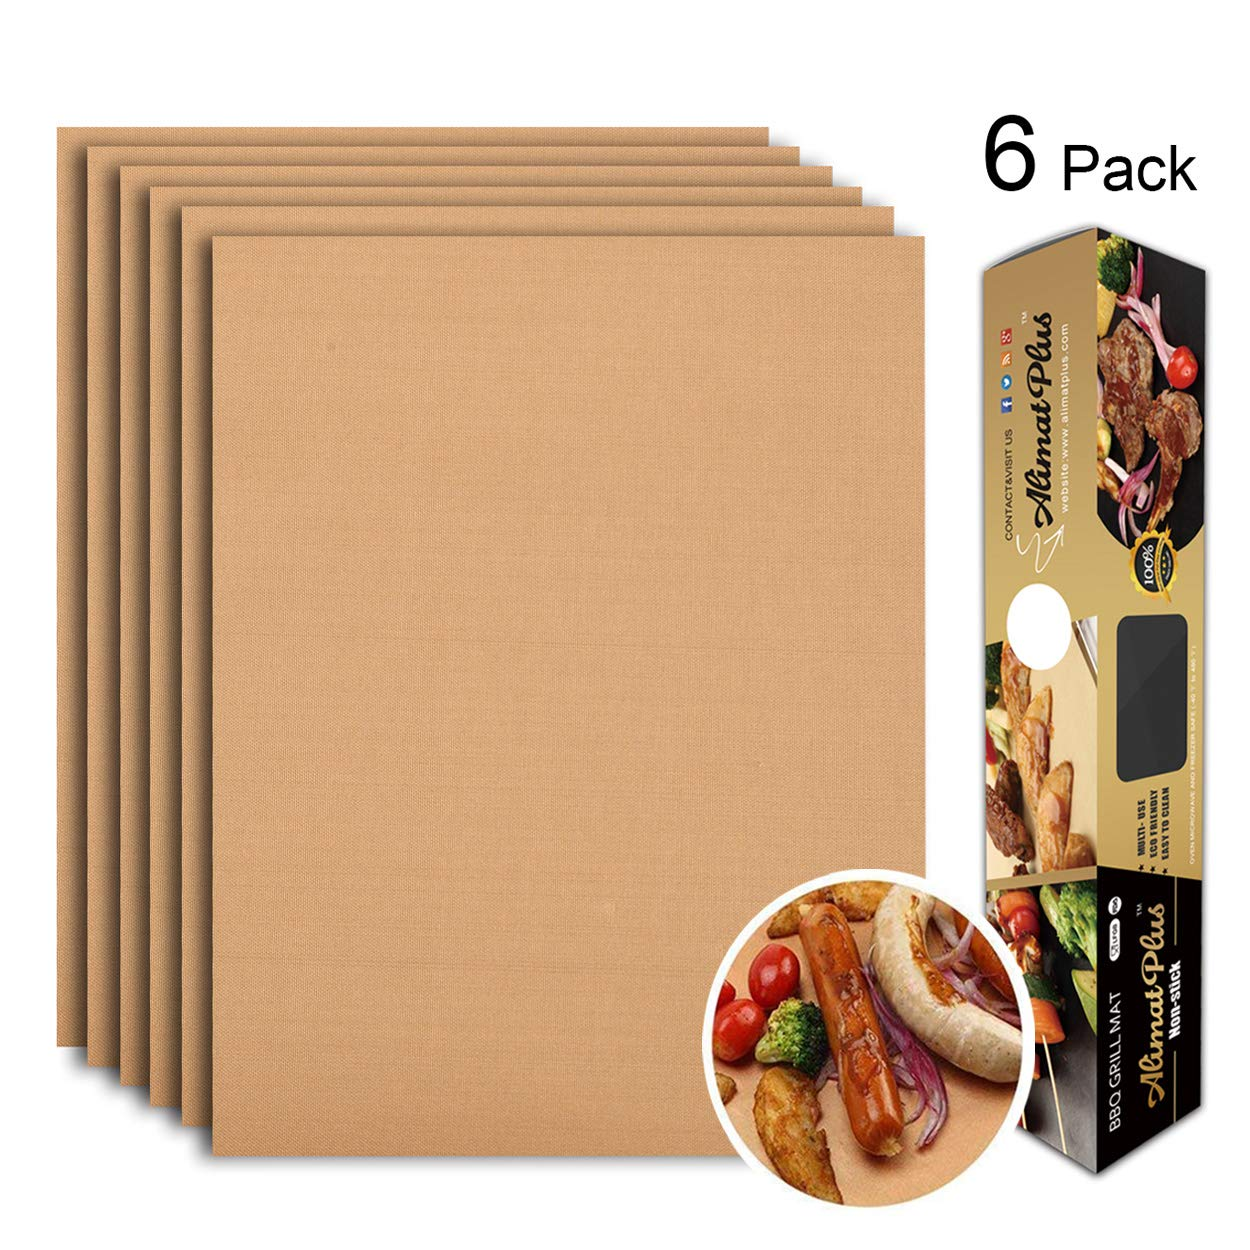 Alimat PluS Grill Mat Set of 6 - BBQ Grill Mats Nonstick Reusable - Heavy Duty 1.5 oz/Sheet, Easy-Clean, Works on Electric Grill, Gas, Charcoal, Oven - 15.75 x 13 Inch, Copper